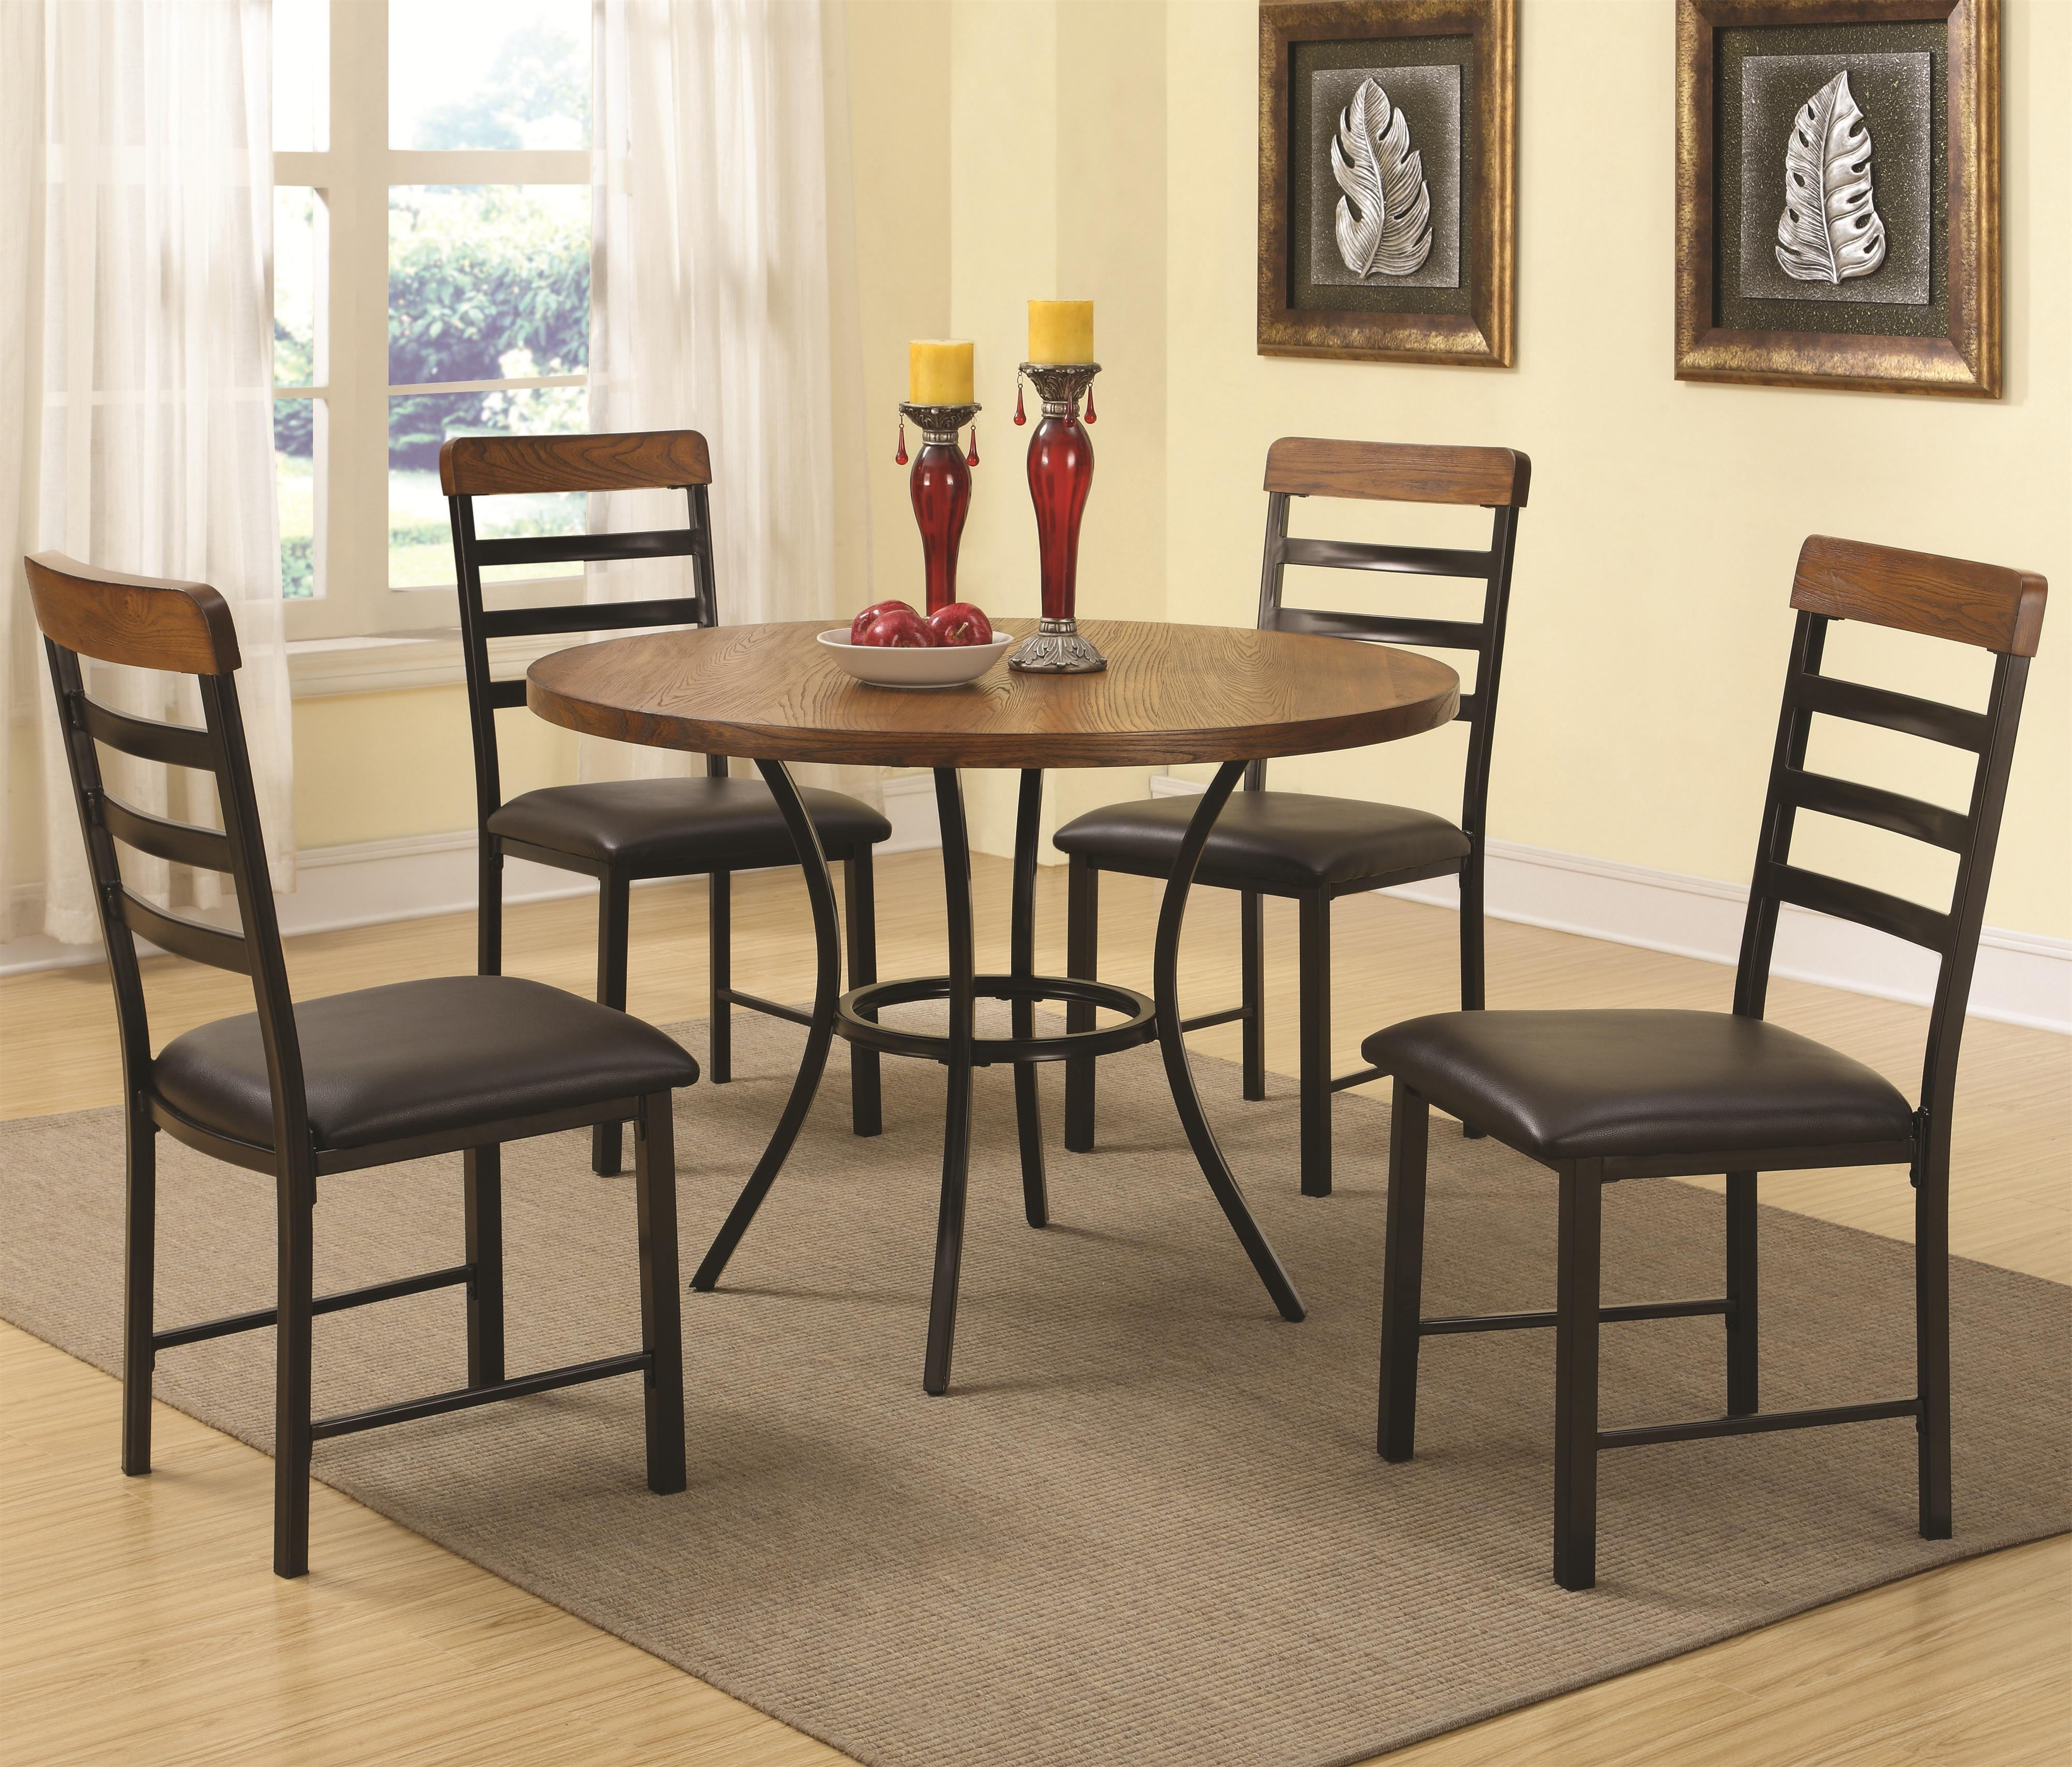 Best And Newest Noah Dining Tables Within Noah 5 Piece Dining Set With Round Pedestal Table And Ladderback (View 4 of 25)